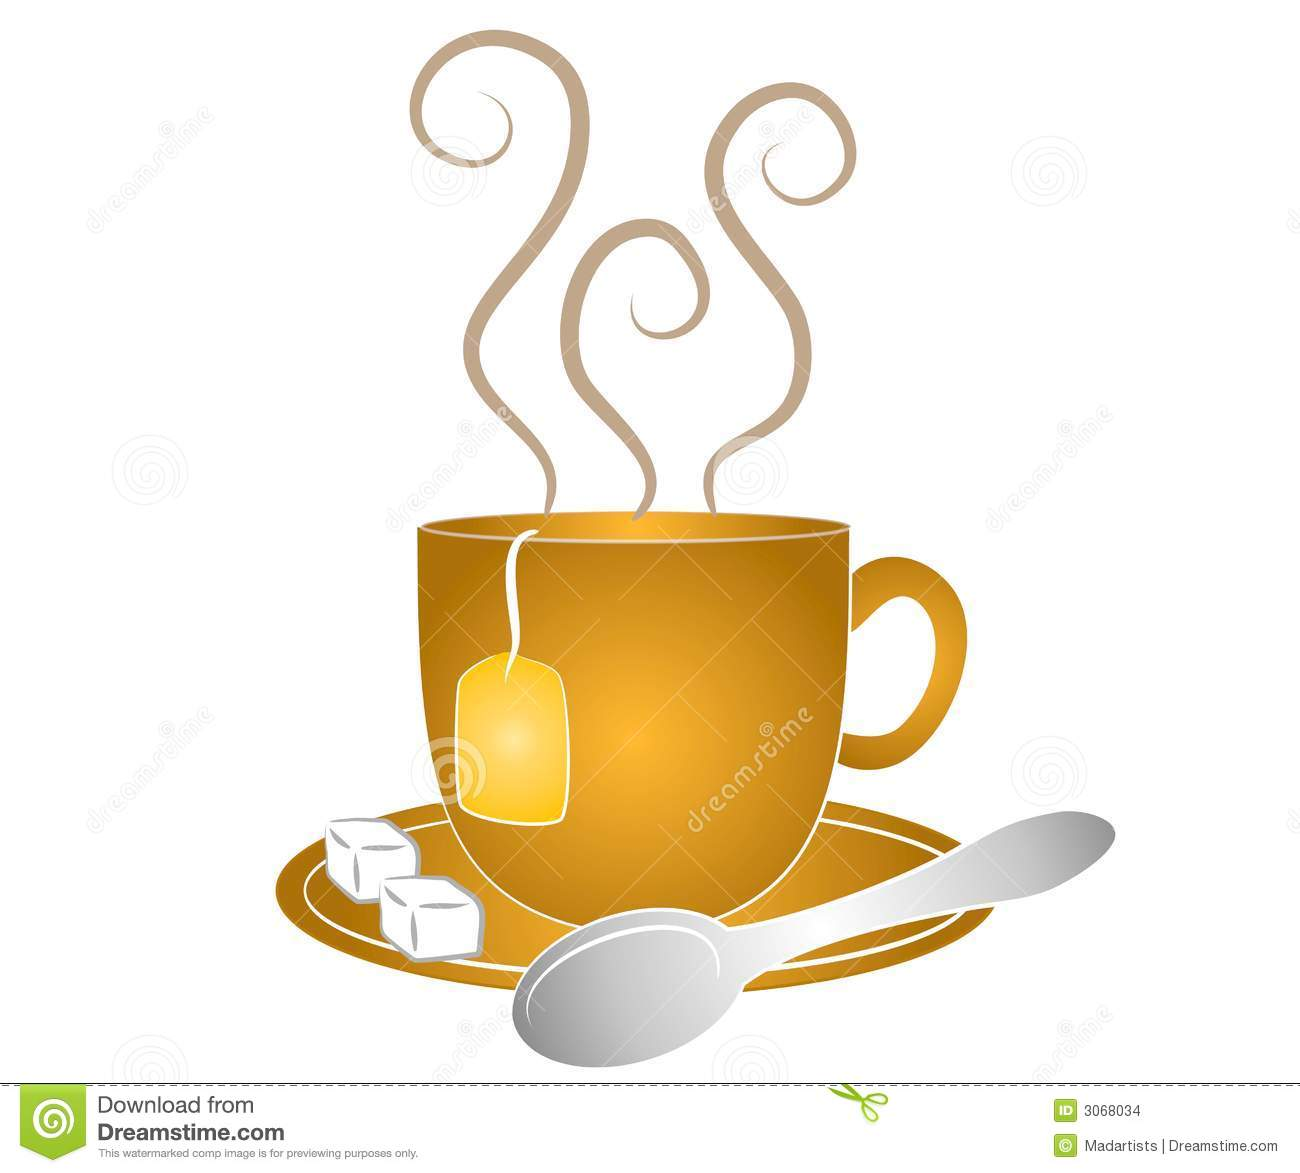 10417 Cup free clipart.